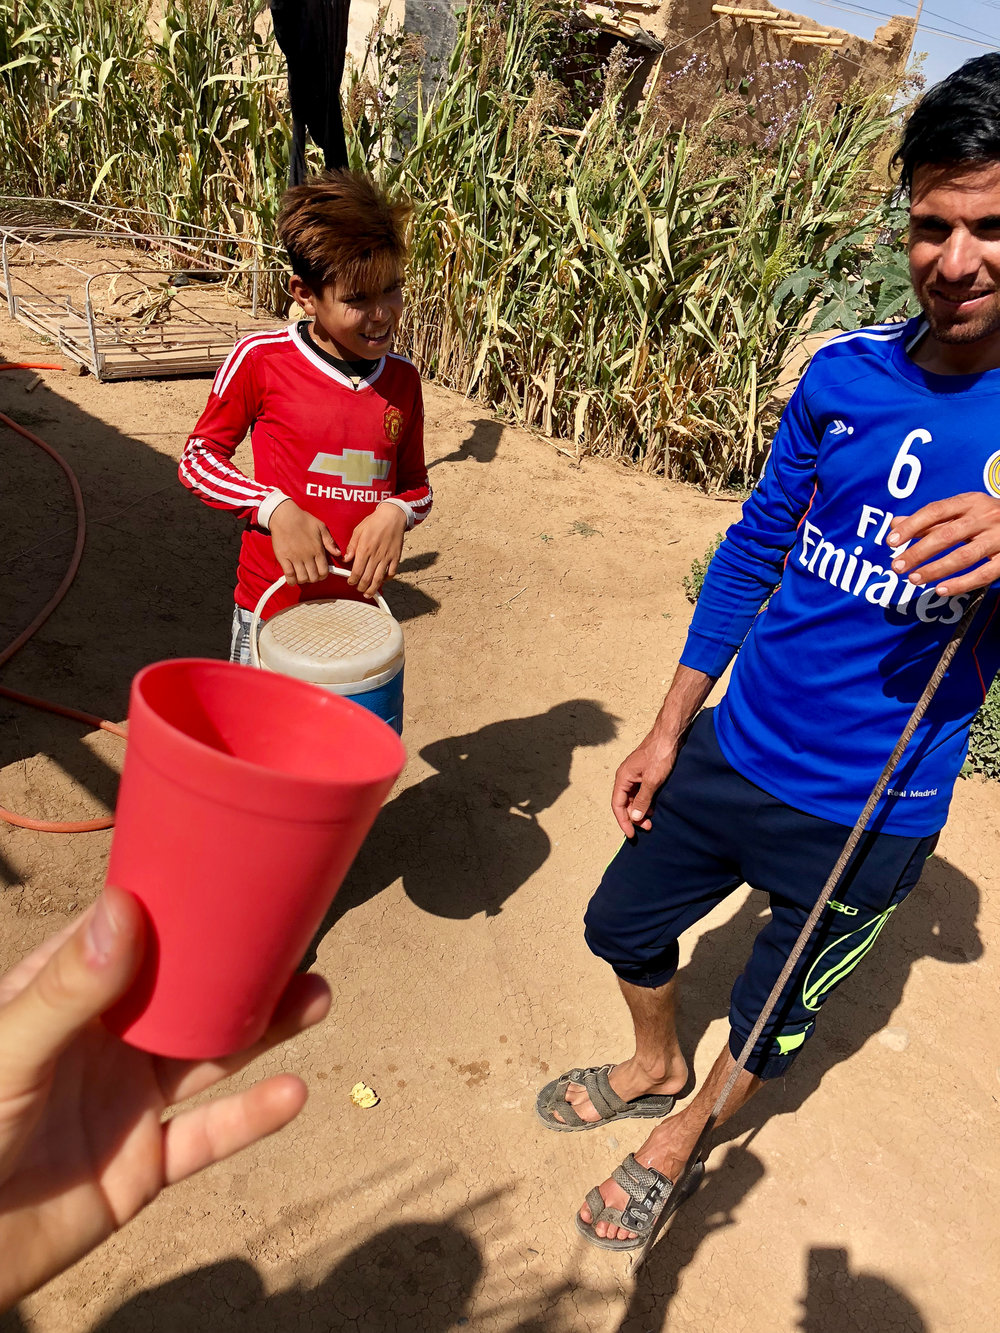 These young yazidi boys offered me a glass of water in an unofficial camp in the desert near Douhk